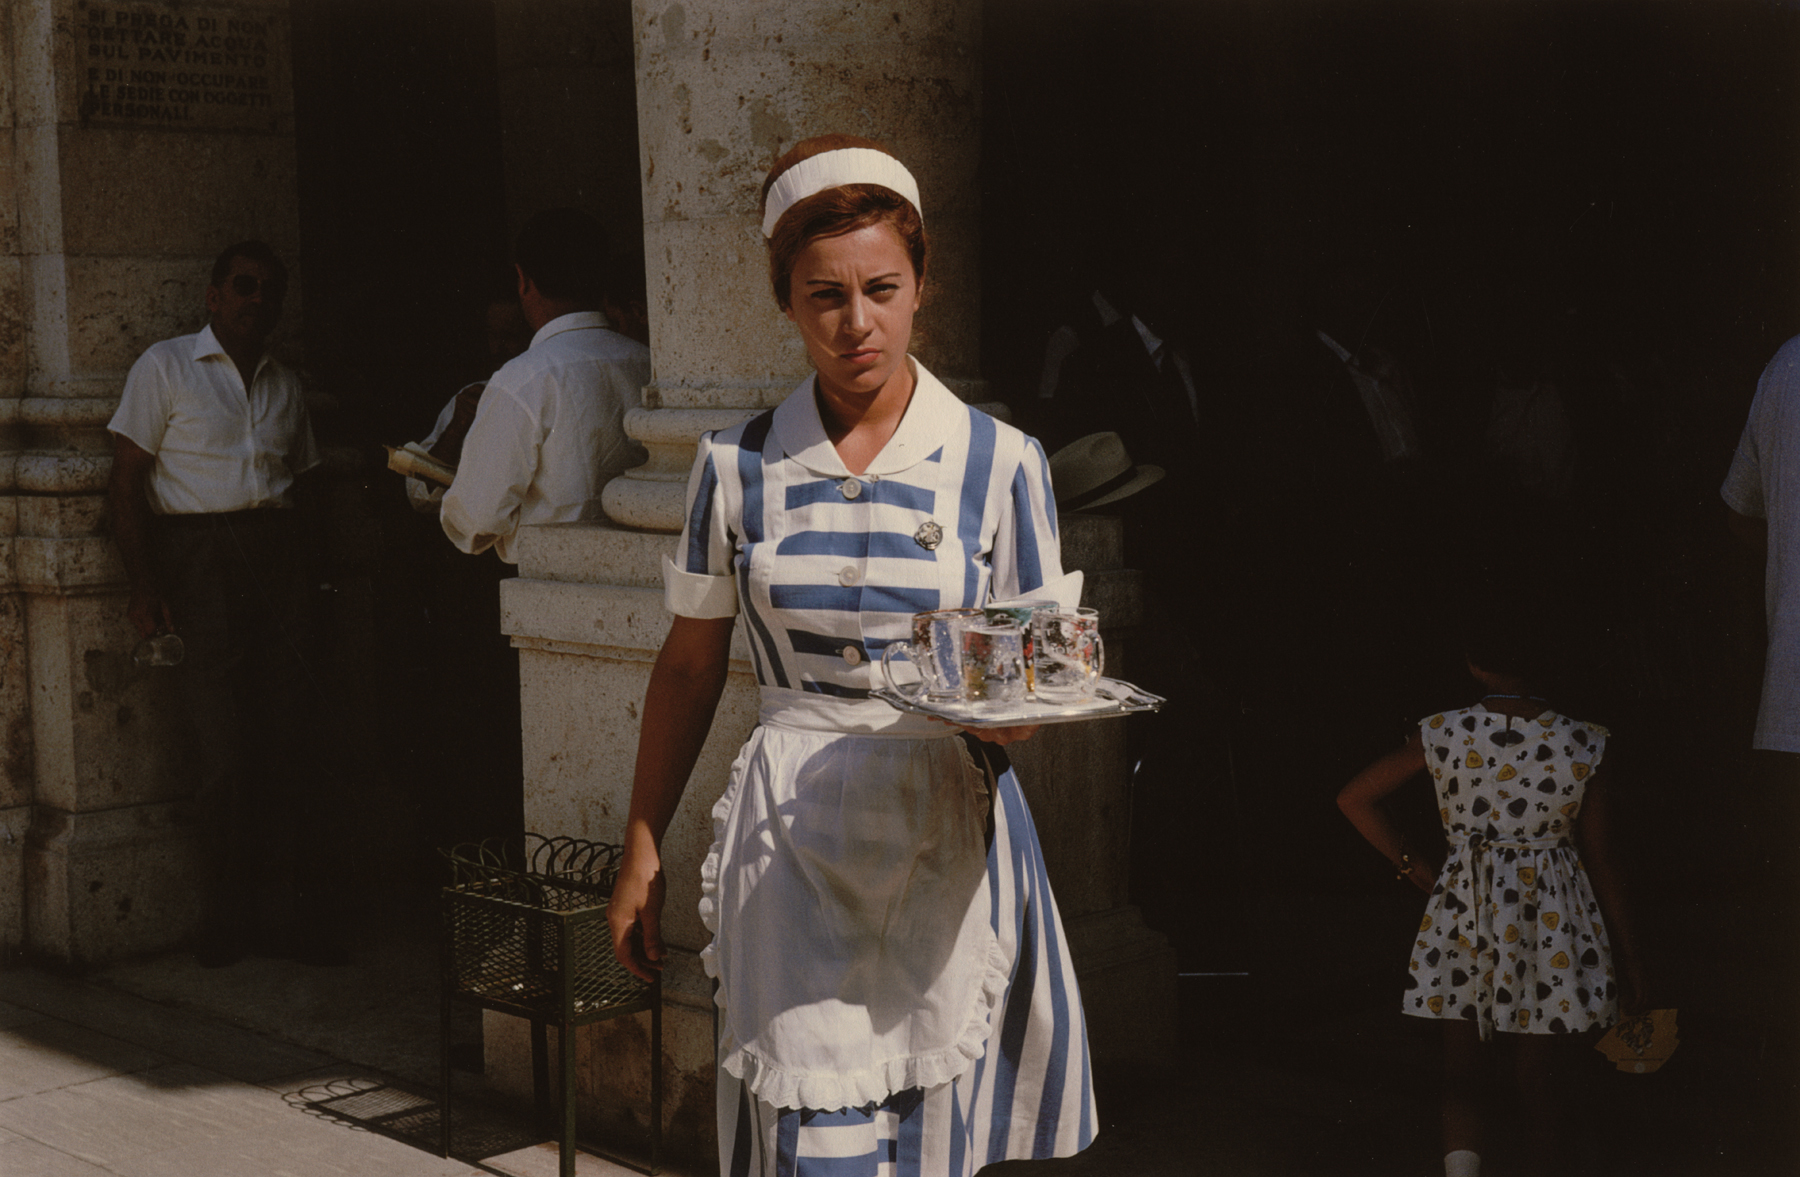 A French Waitress, Paris, 1961 by Stanley Marcus